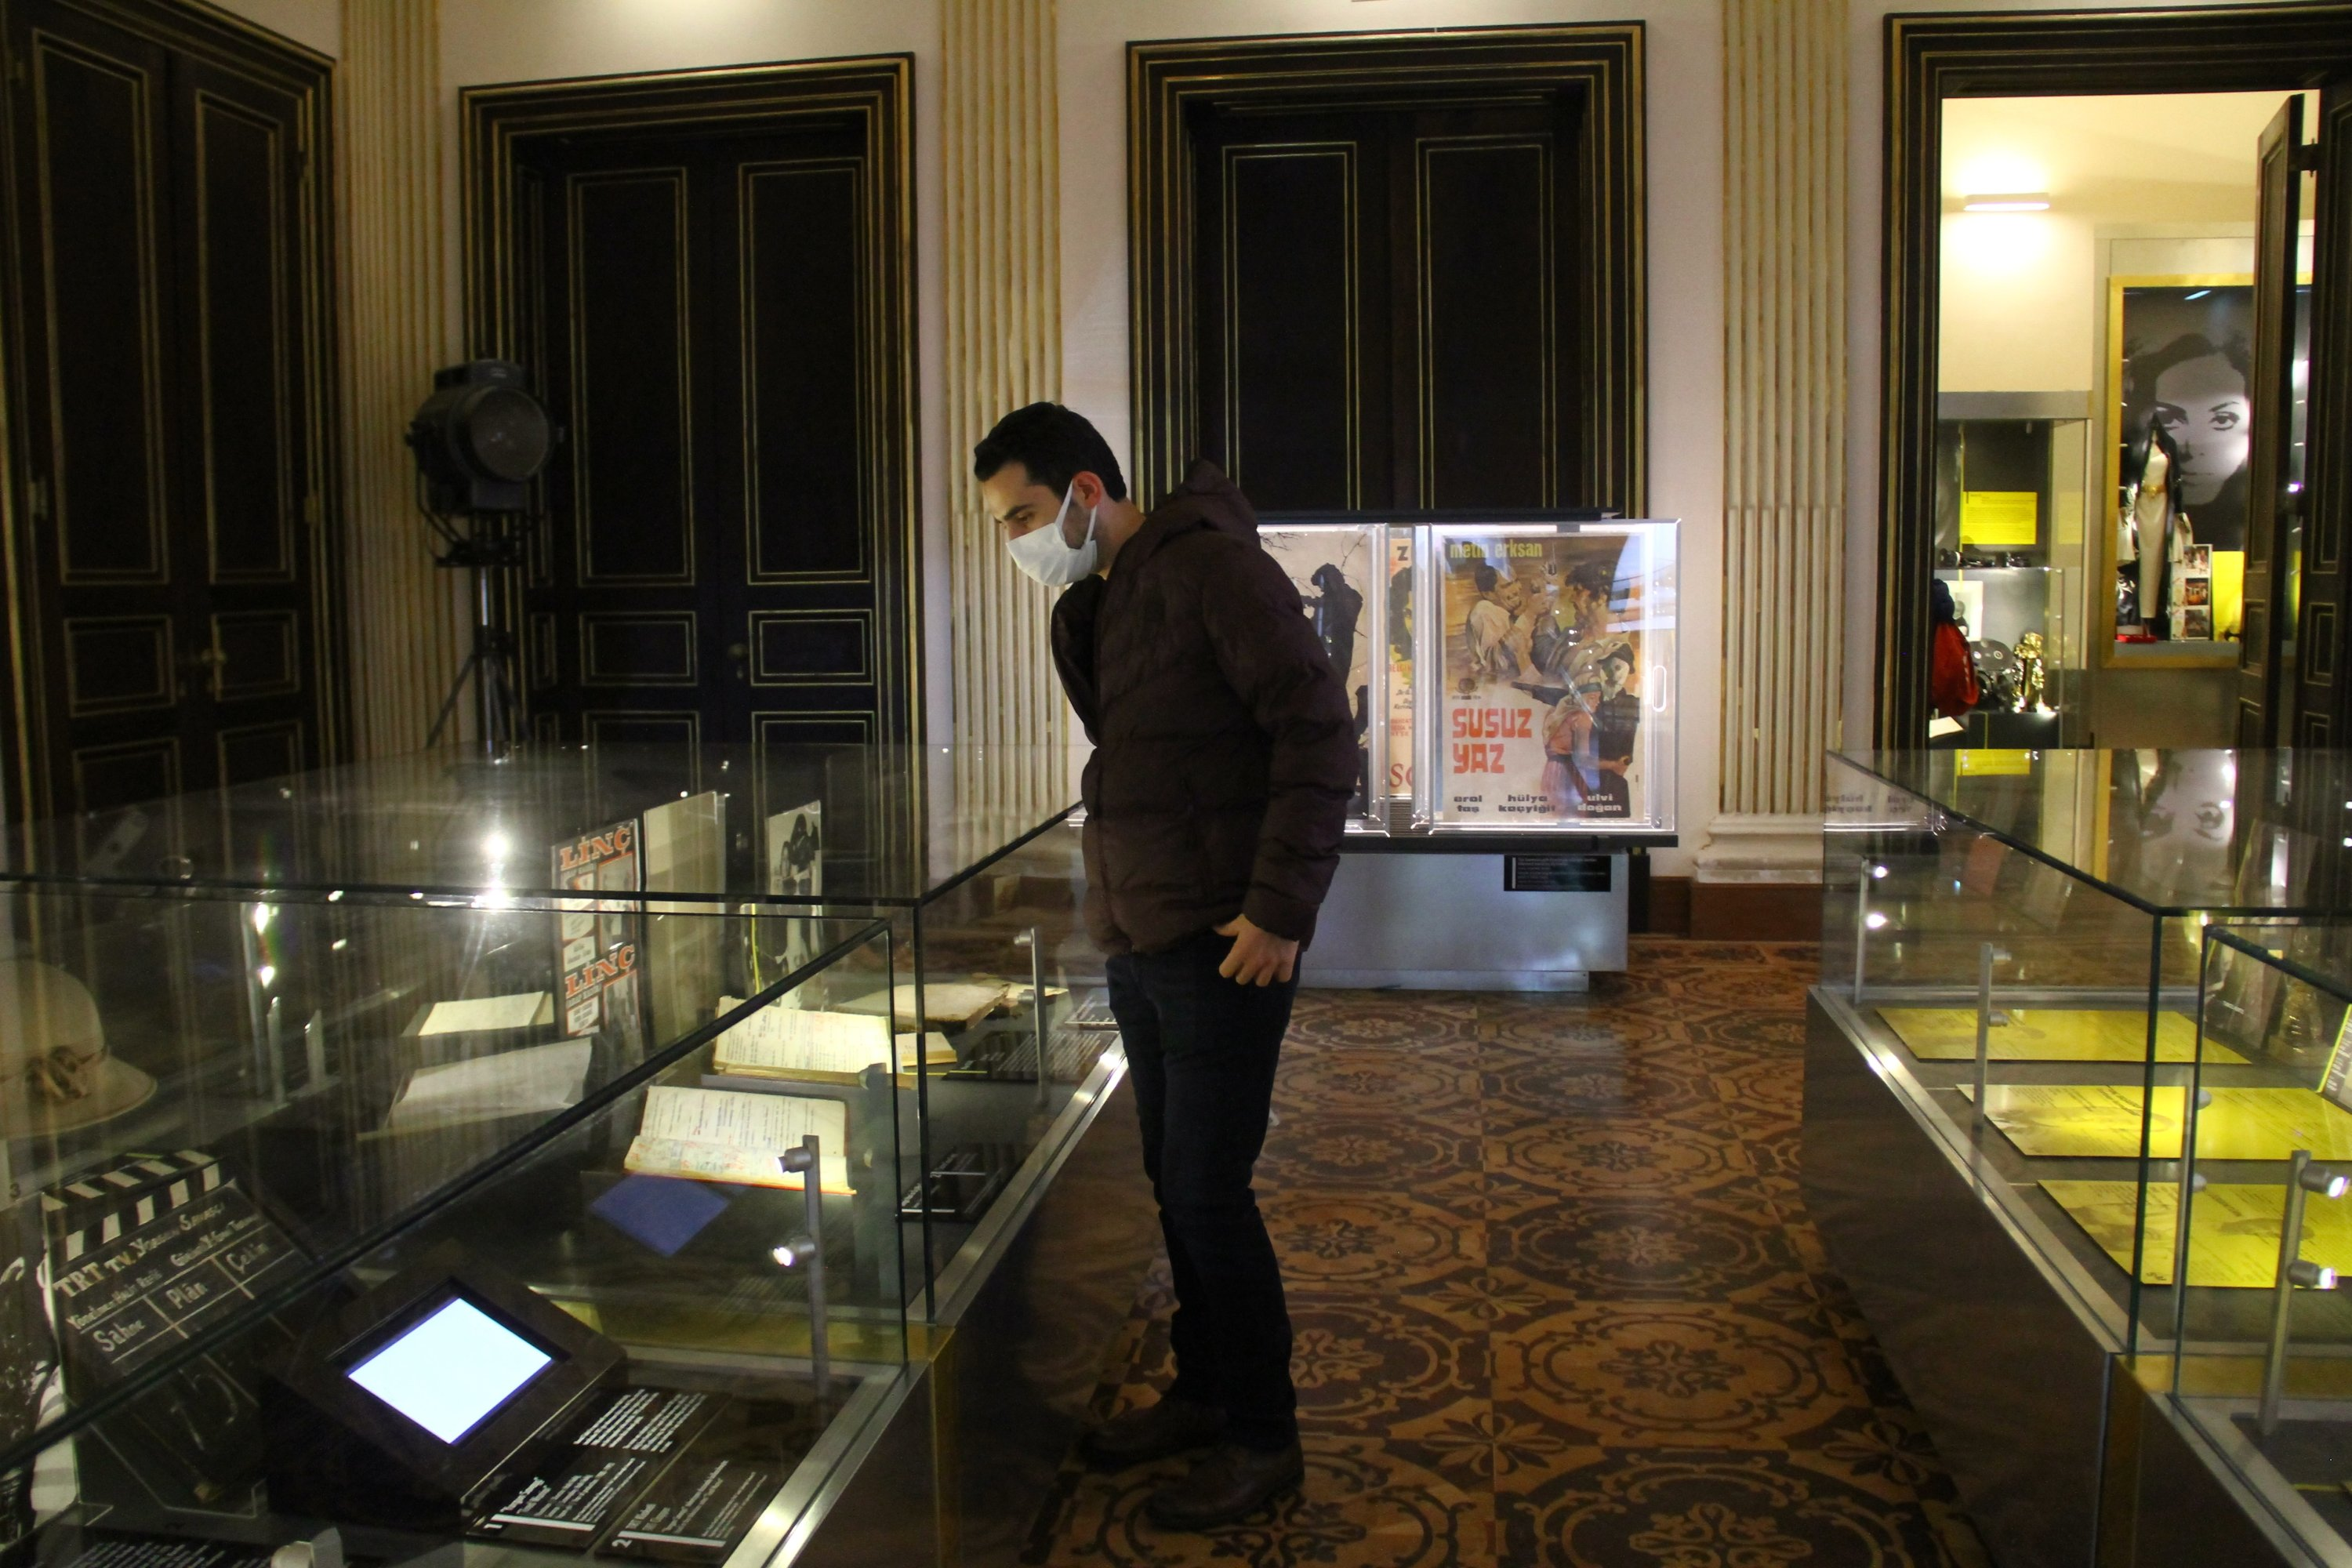 A visitor examines exhibits at the Istanbul Cinema Museum, Istanbul, Turkey. (Courtesy of the author)